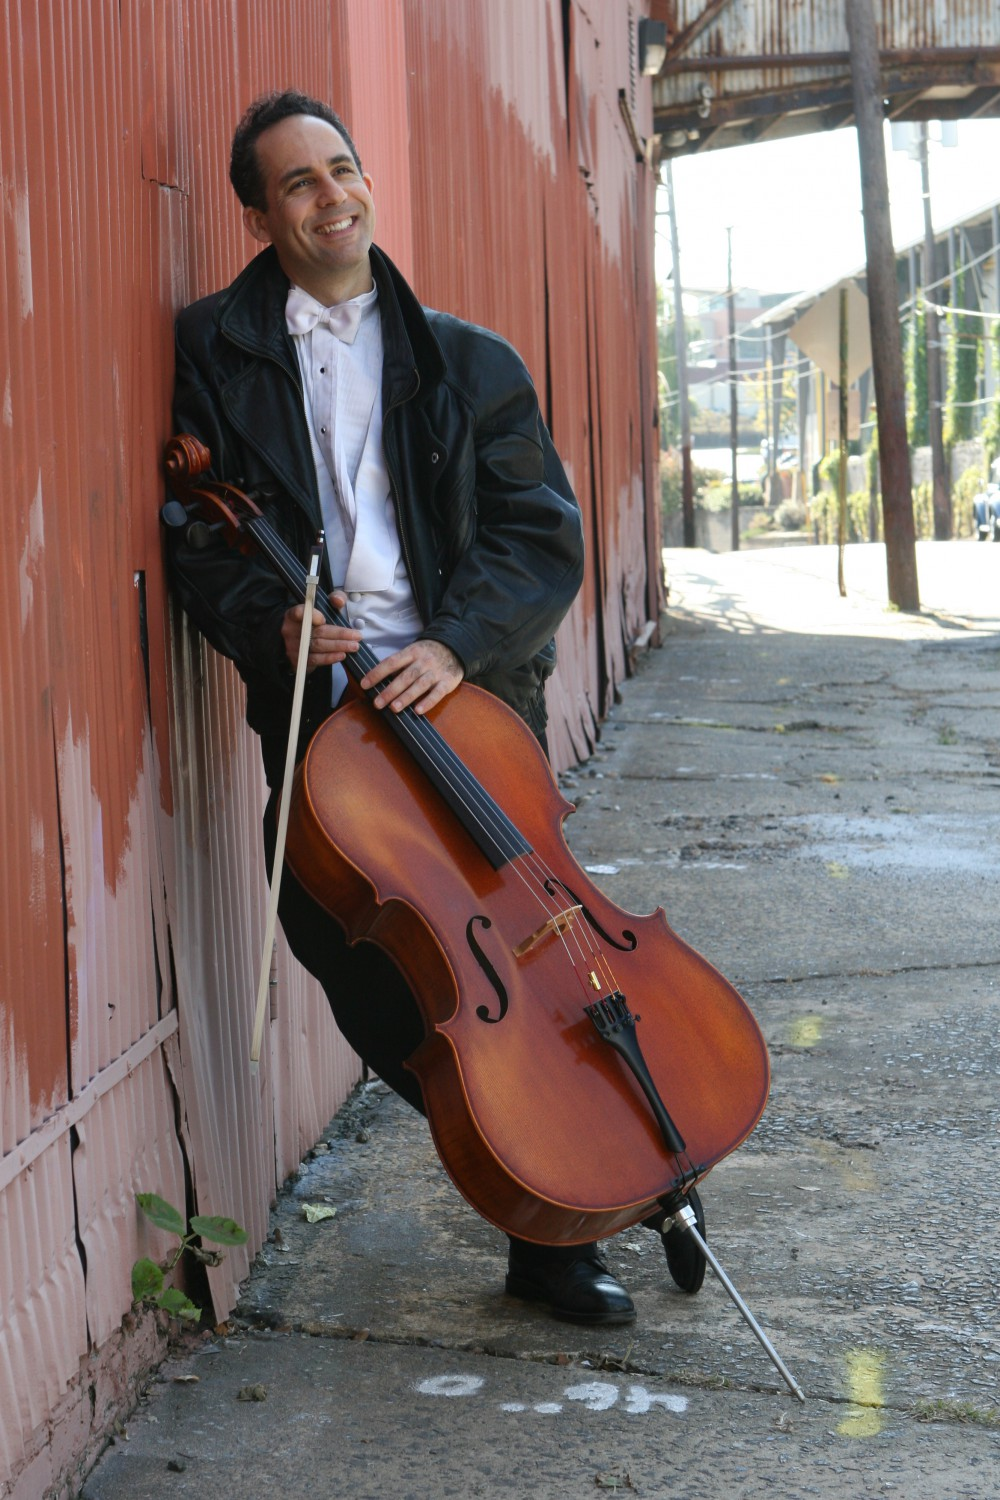 Roy Harran, Atlanta Cellist, Cello Teacher & Wedding Musician